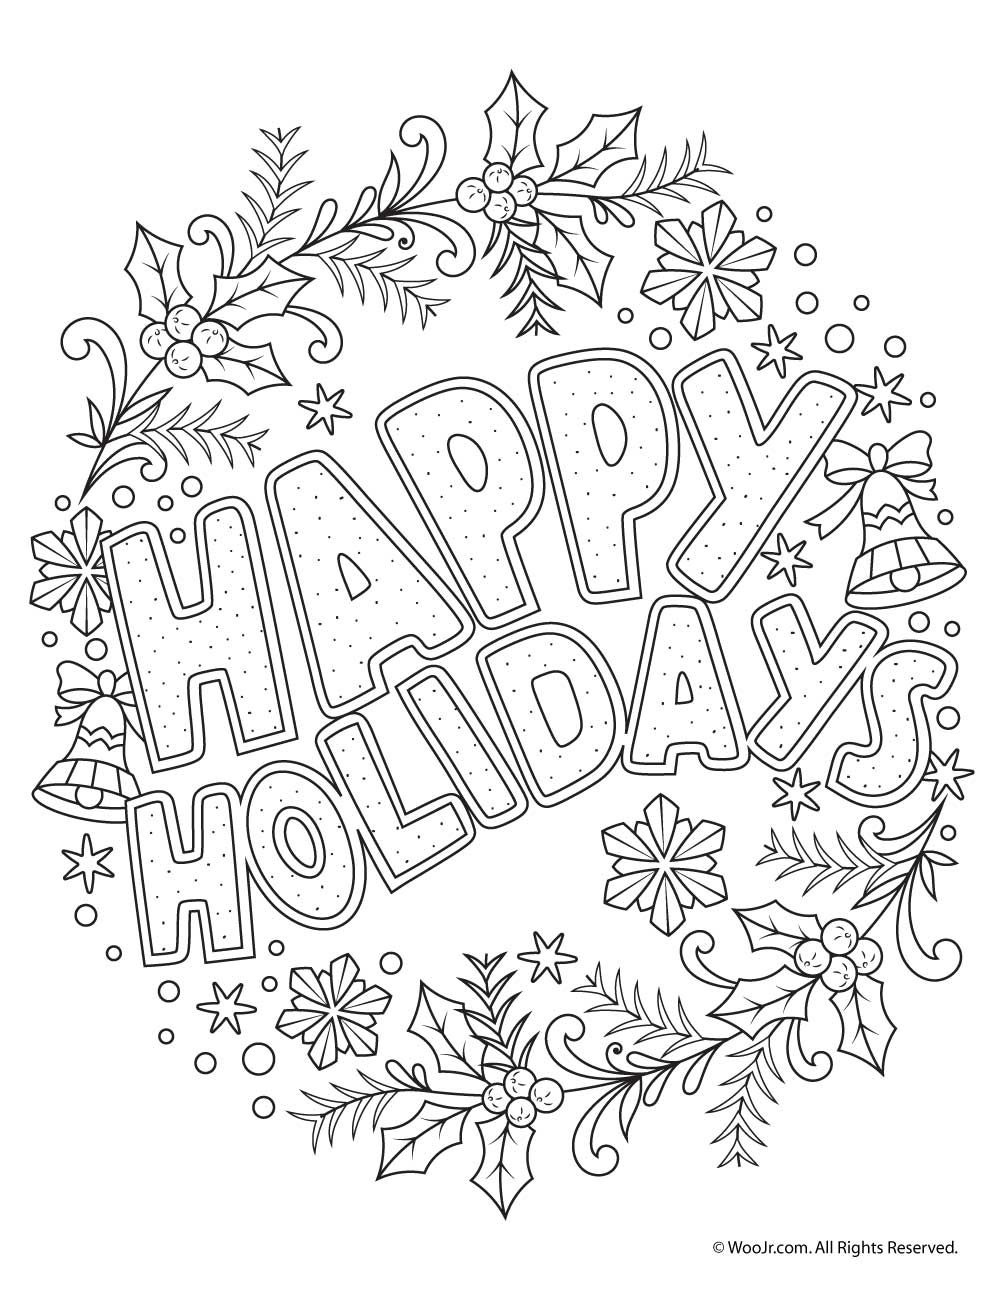 Beautiful Printable Christmas Adult Coloring Pages | Coloring Pages - Free Printable Christmas Coloring Pages